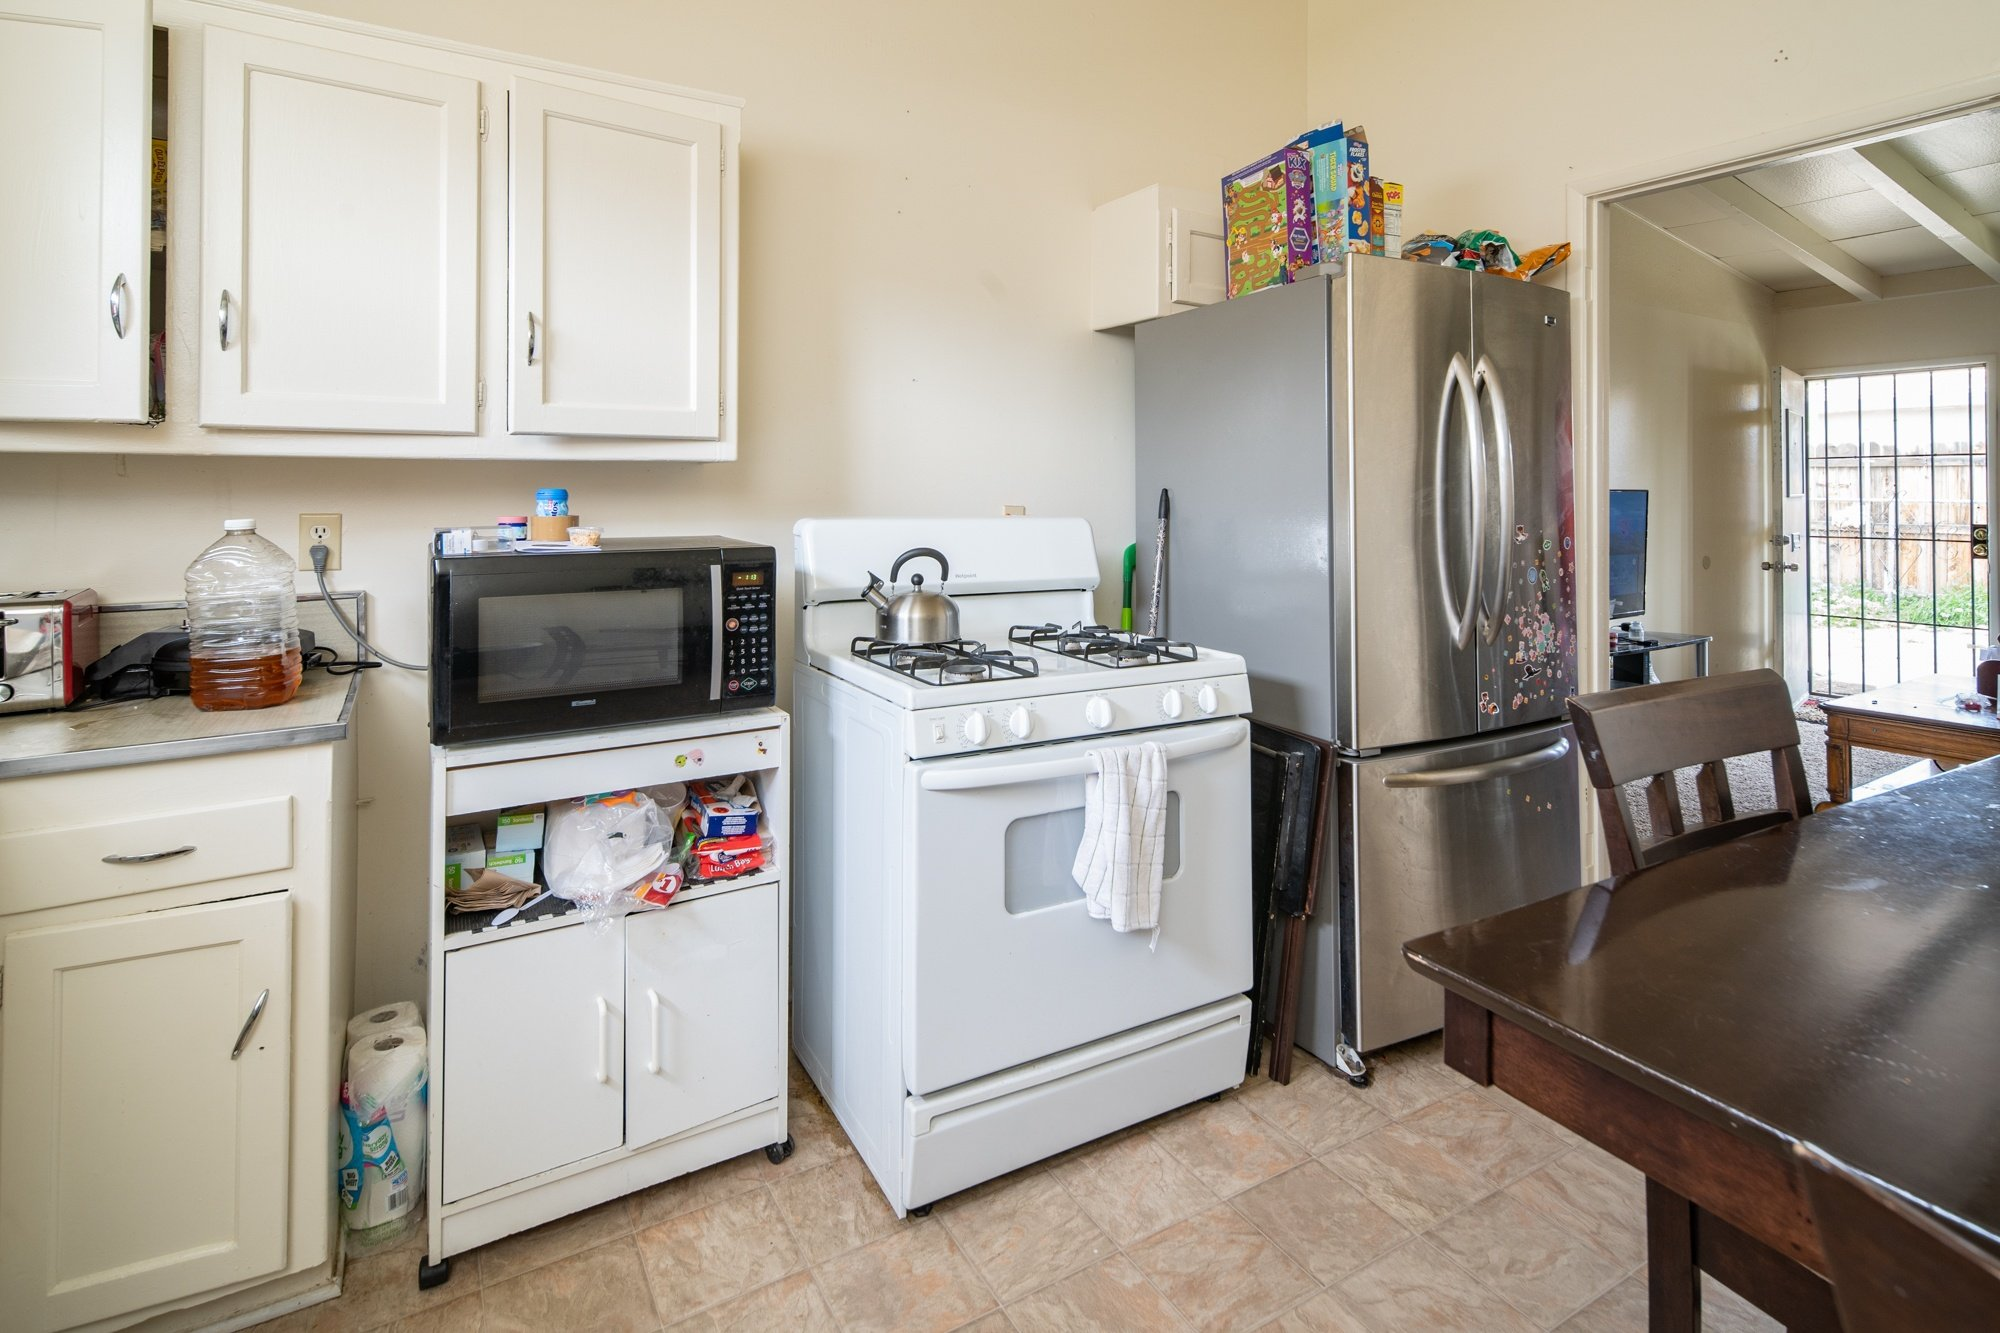 Palmdale, CA best real estate agent 557 - 559 West Avenue H 8, Lancaster, CA 93534 (kitchen)